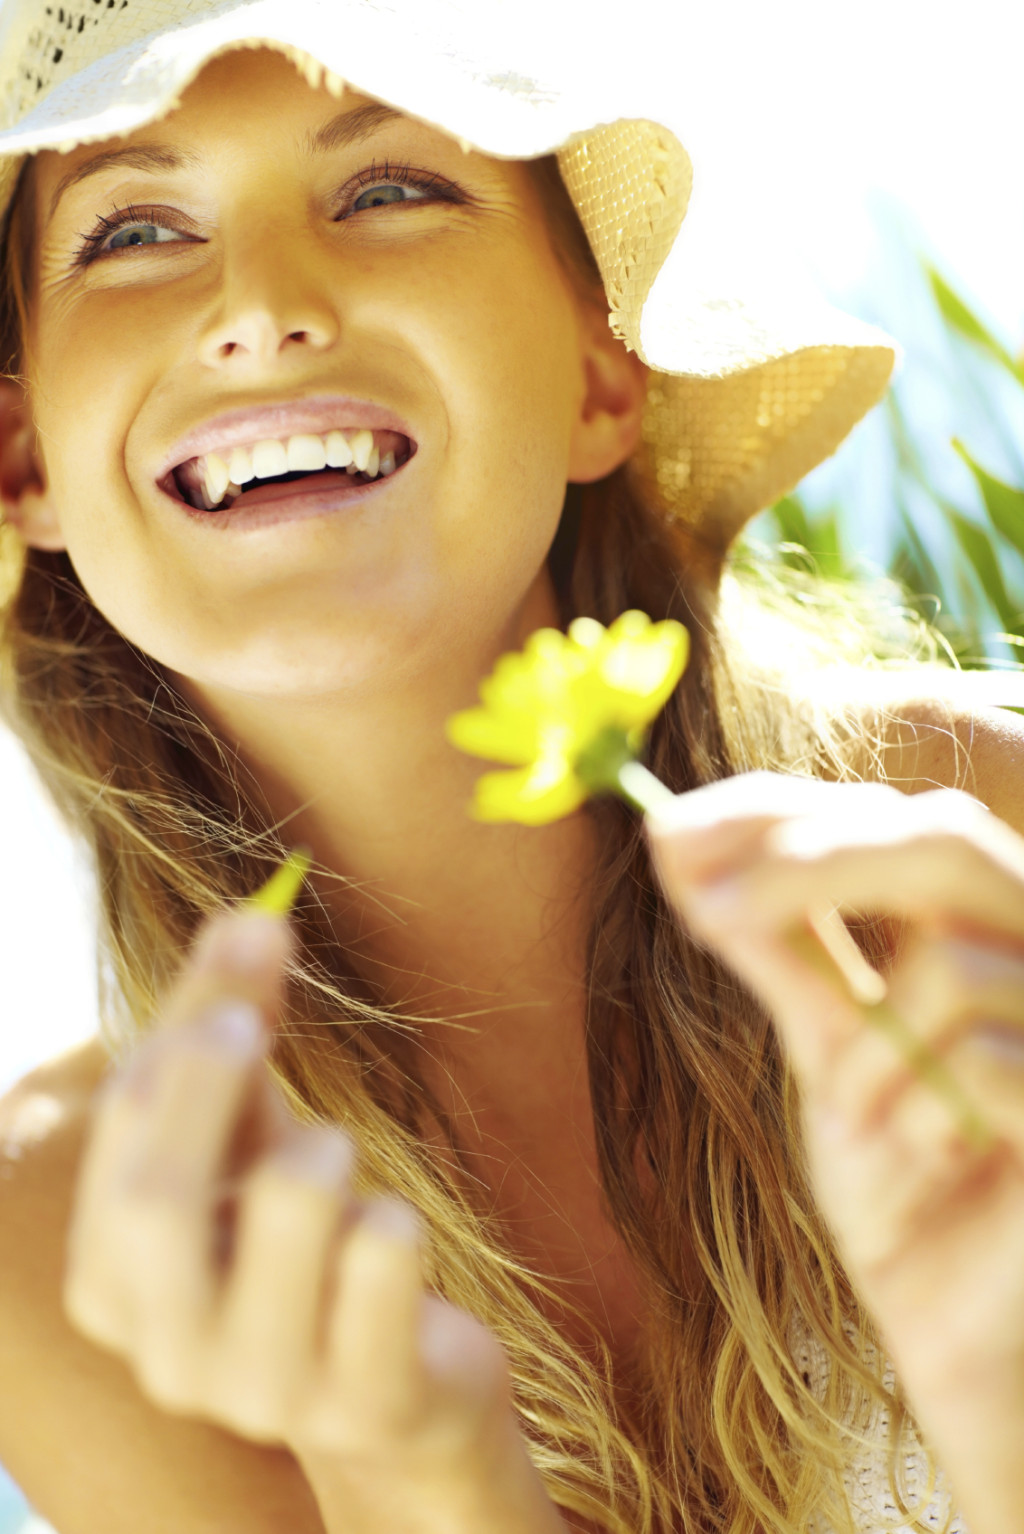 Closeup of a happy young woman with great teeth holding a yellow flower